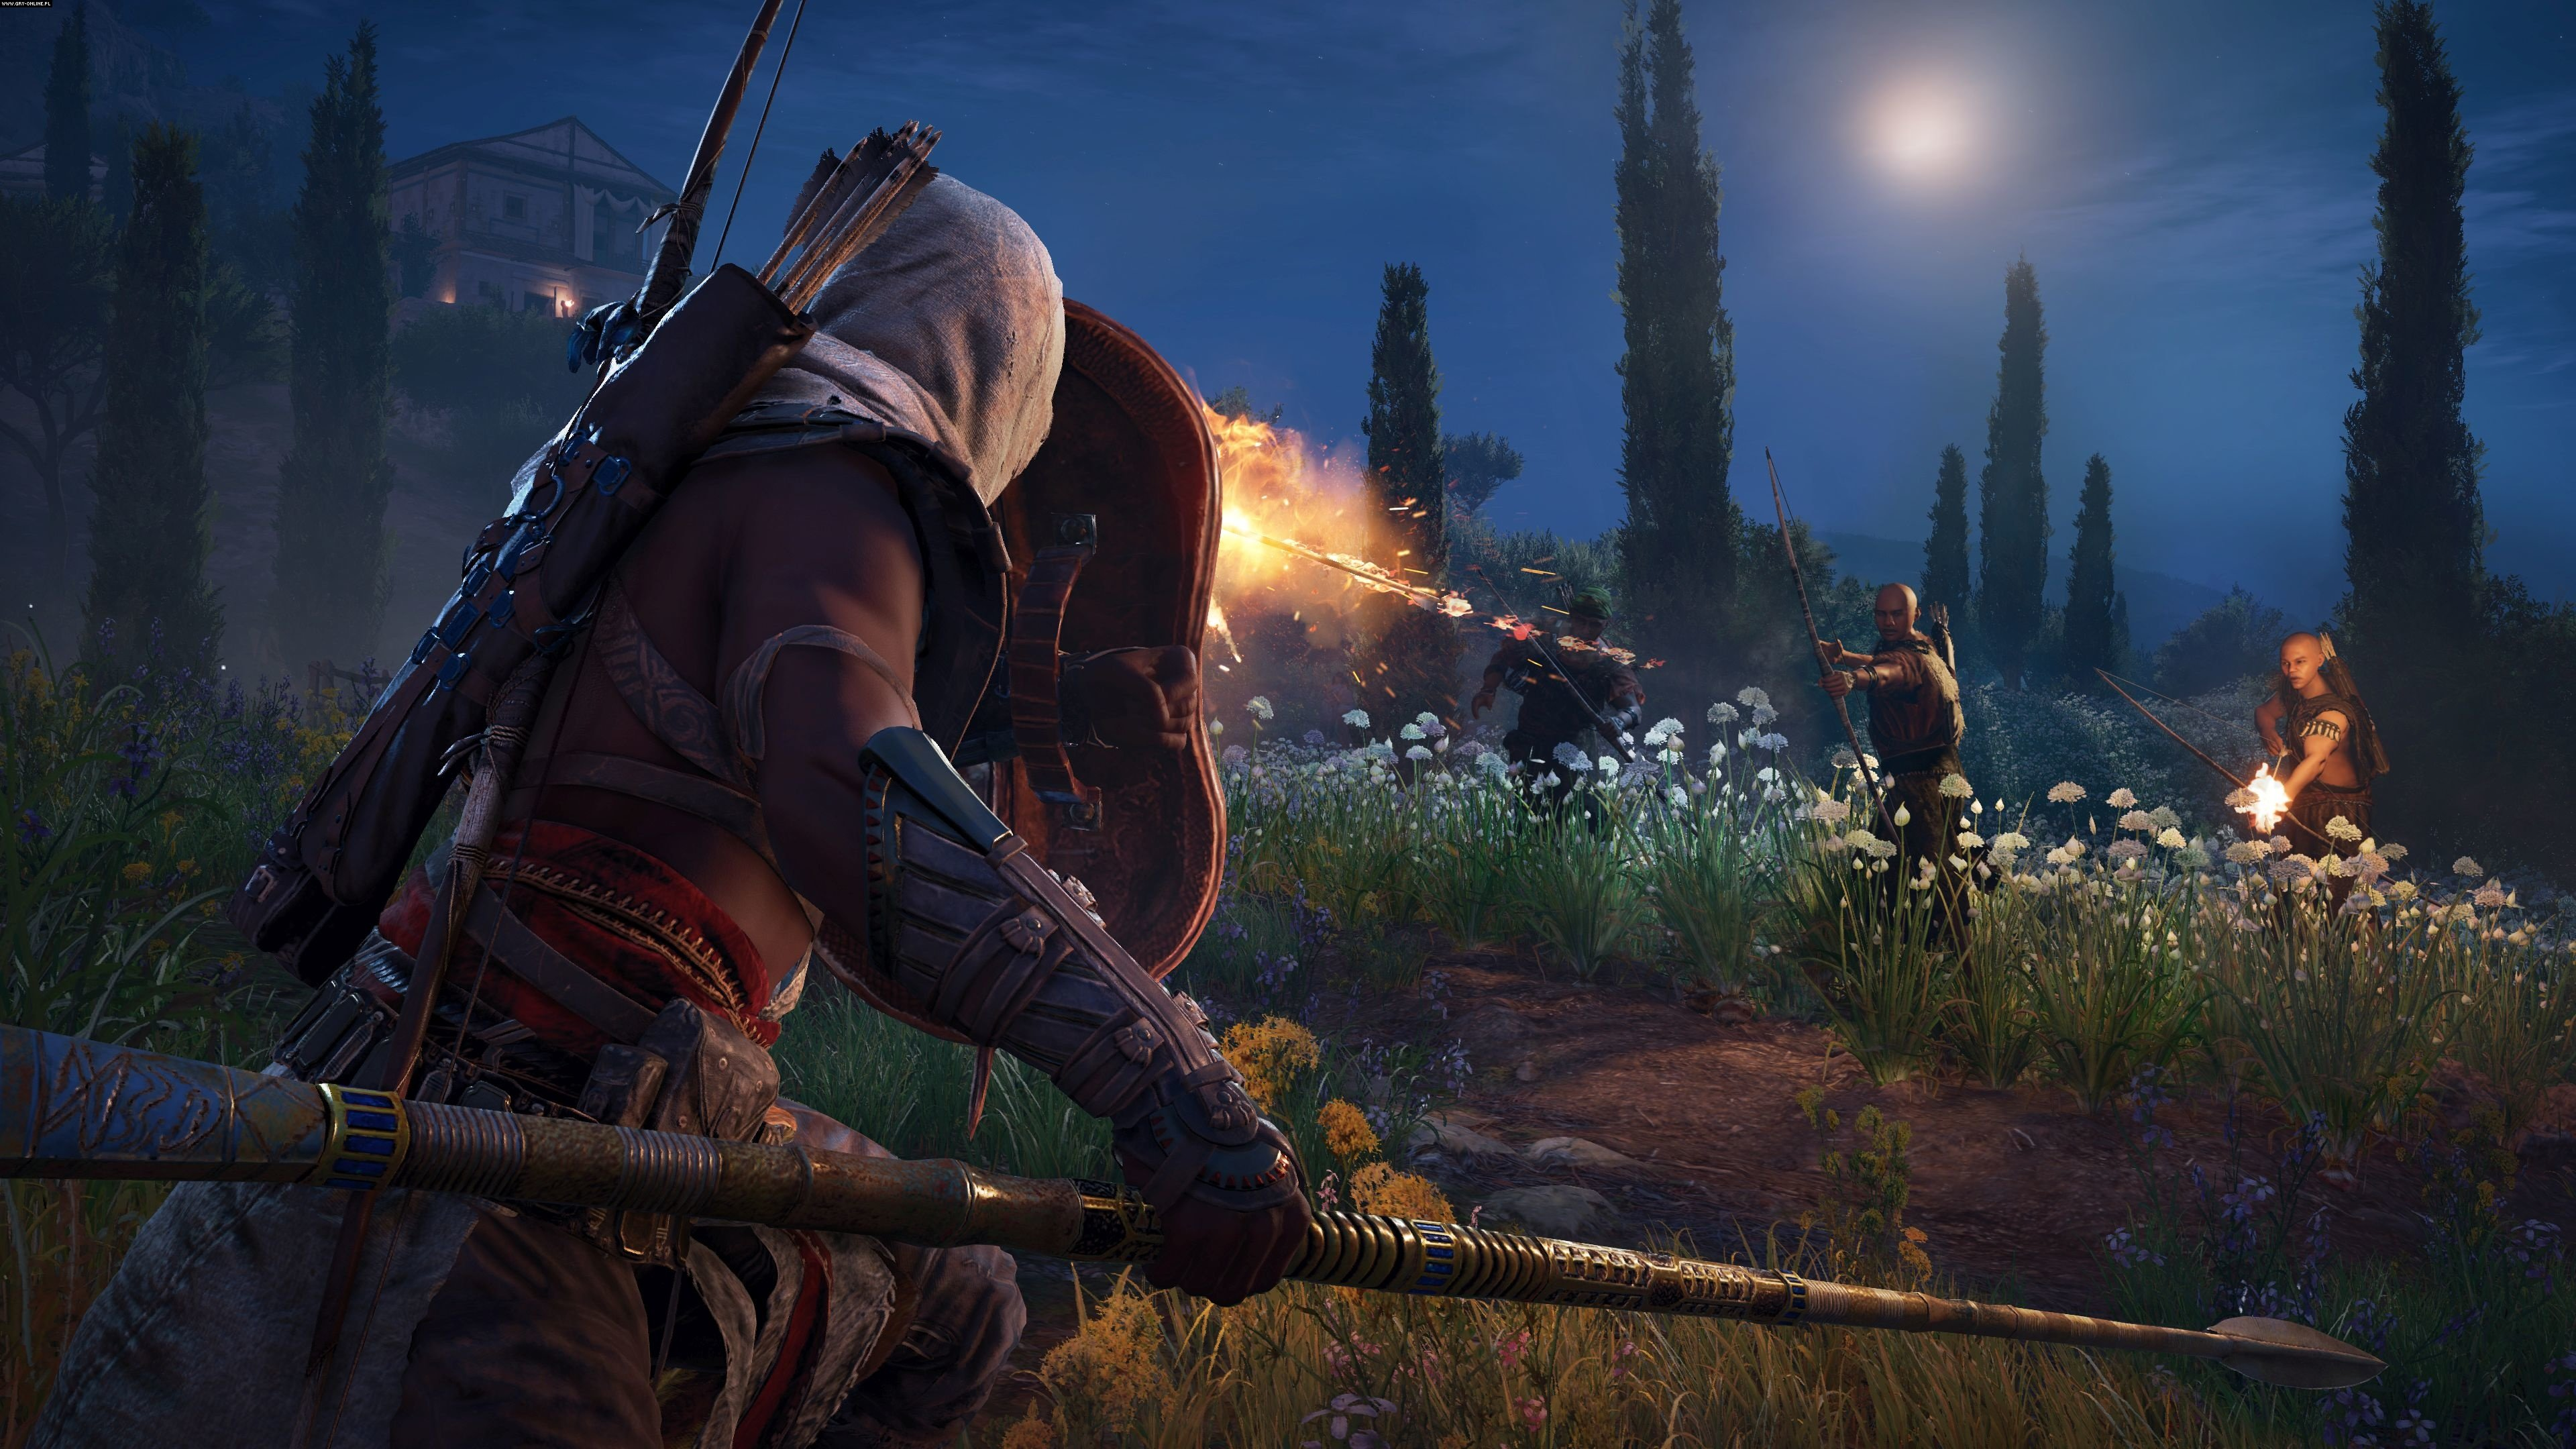 Assassin's Creed: Origins PC, PS4, XONE Games Image 13/13, Ubisoft